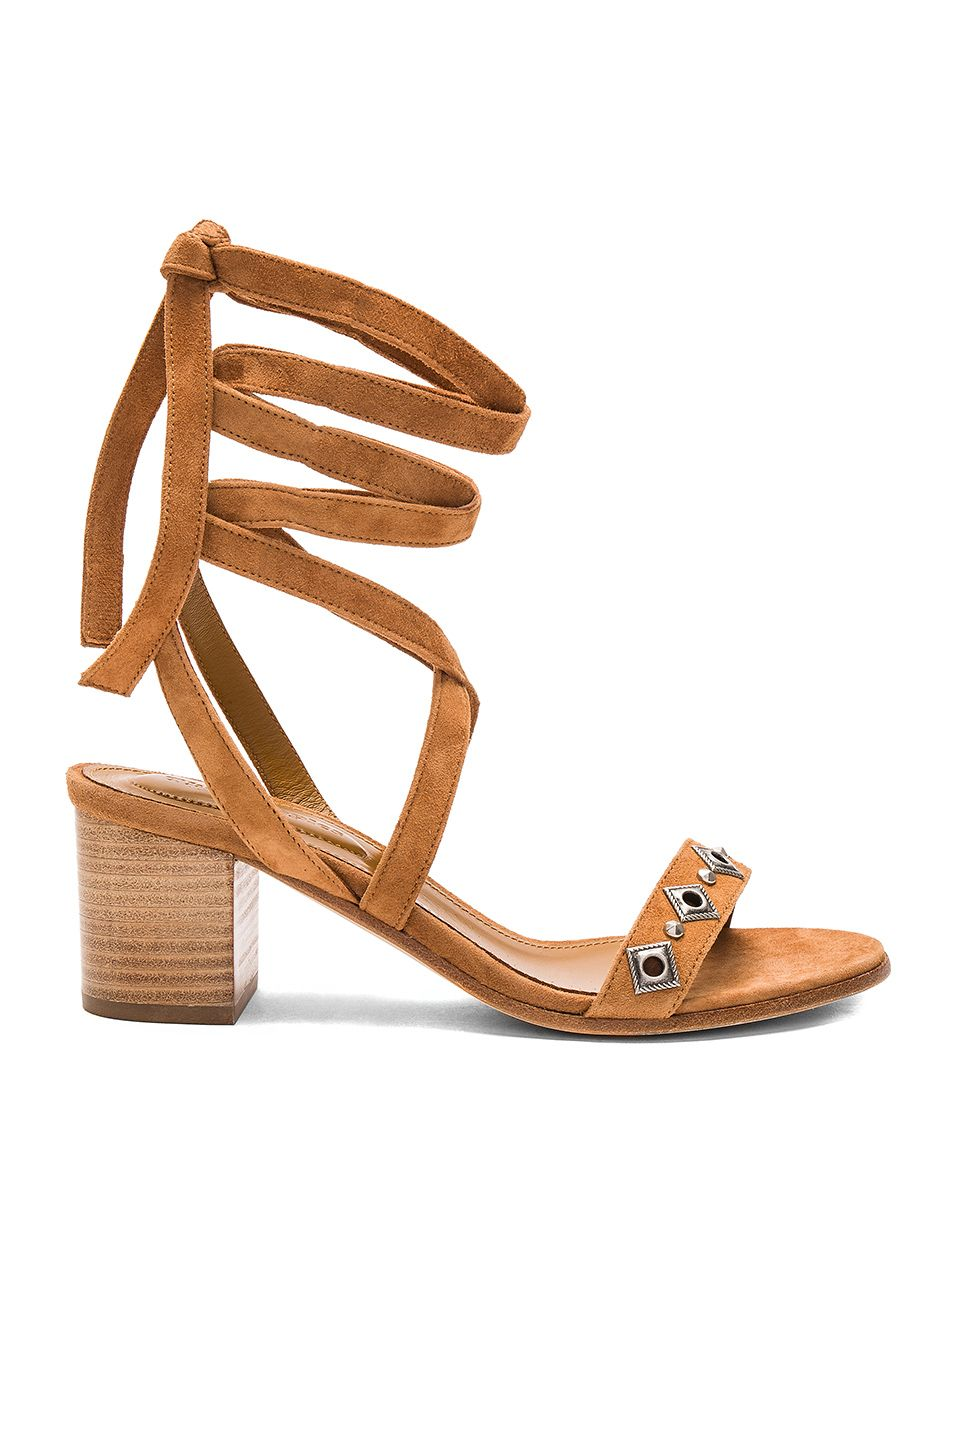 ed2f118e425 THE KOOPLES STRAPPY STUD SANDAL. #thekooples #shoes #sandals | The ...